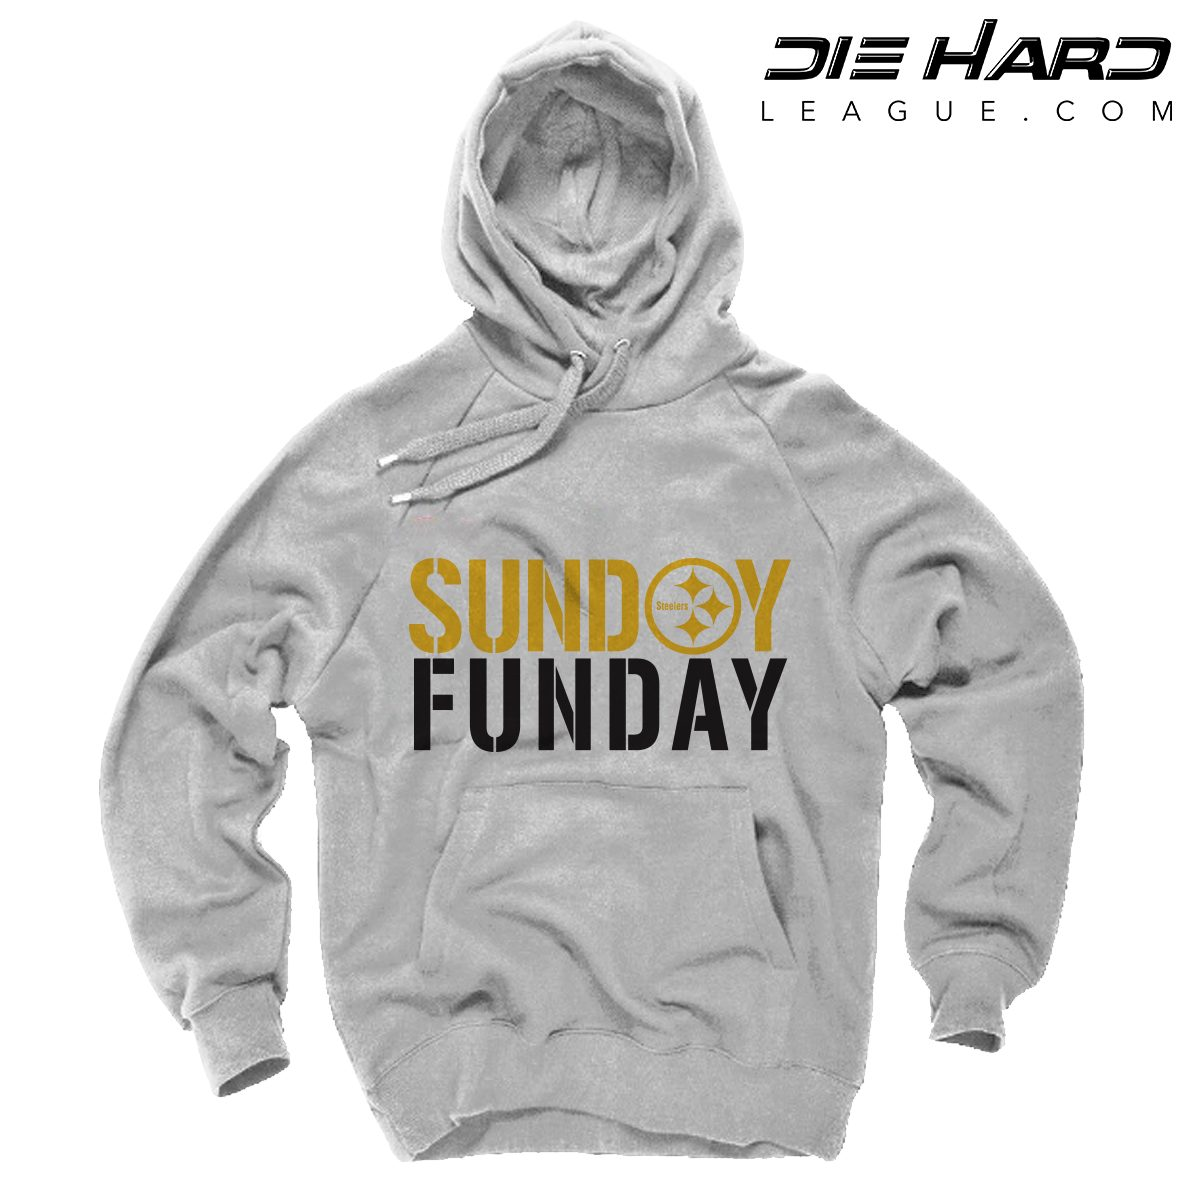 sports shoes 19f43 59bd8 Steelers Hoodie Pittsburgh - Sunday Funday White Sweatshirt